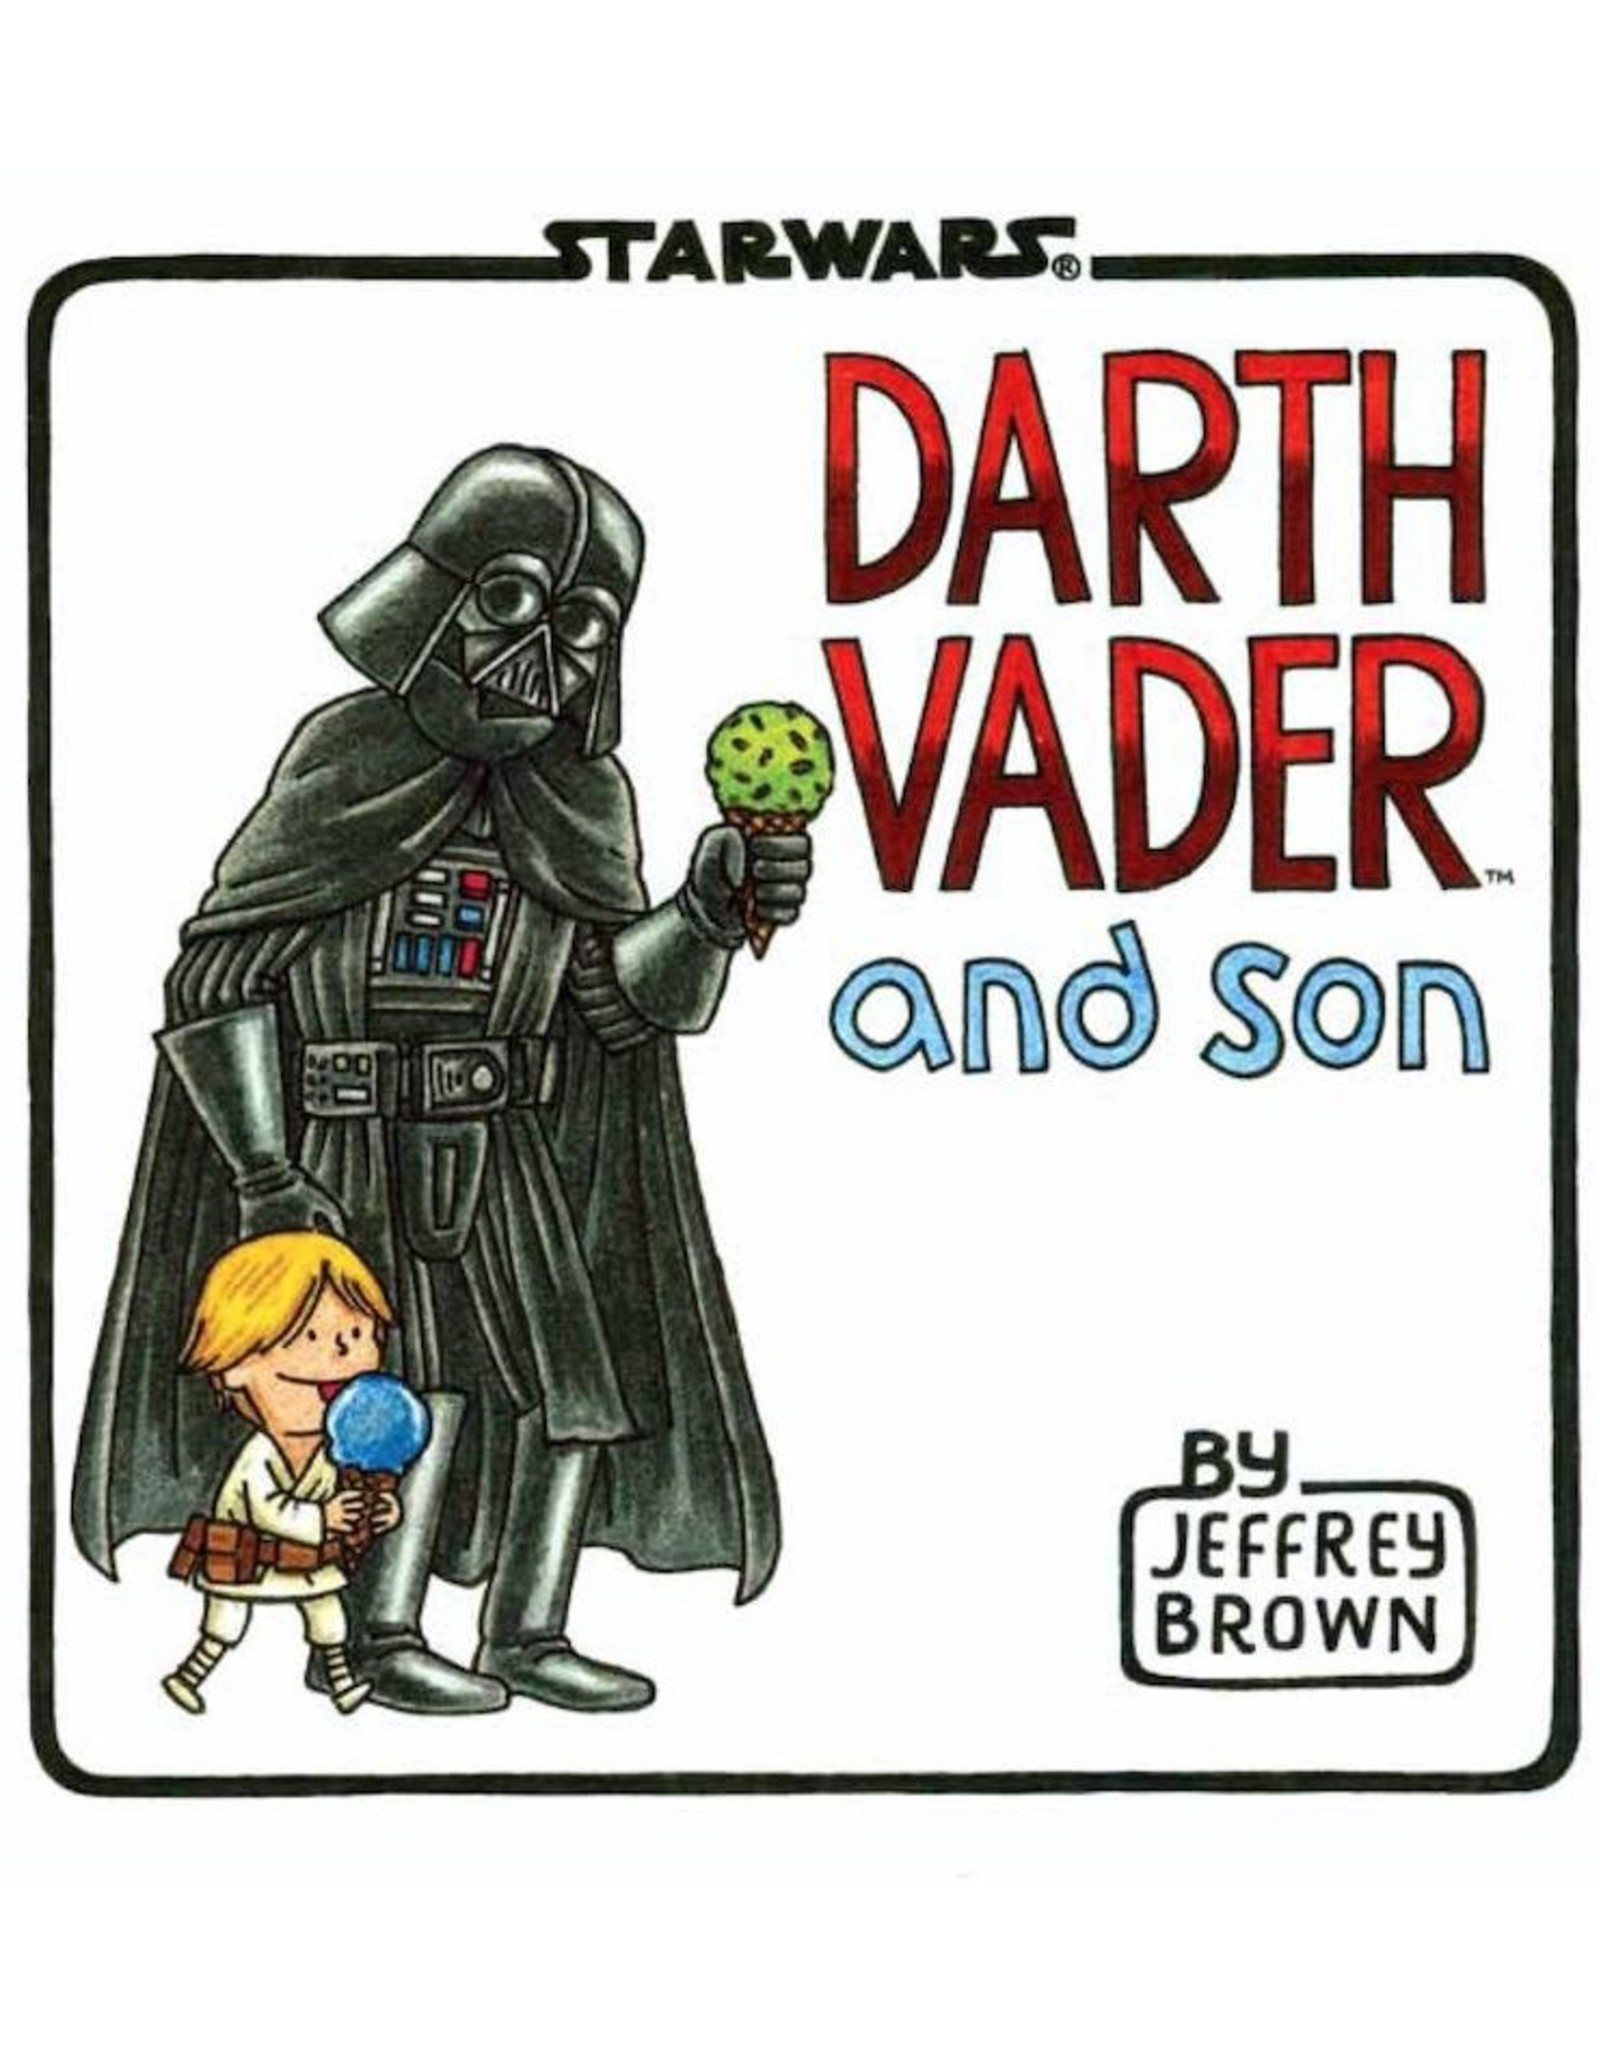 Darth Vader and Son by Jeffery Brown